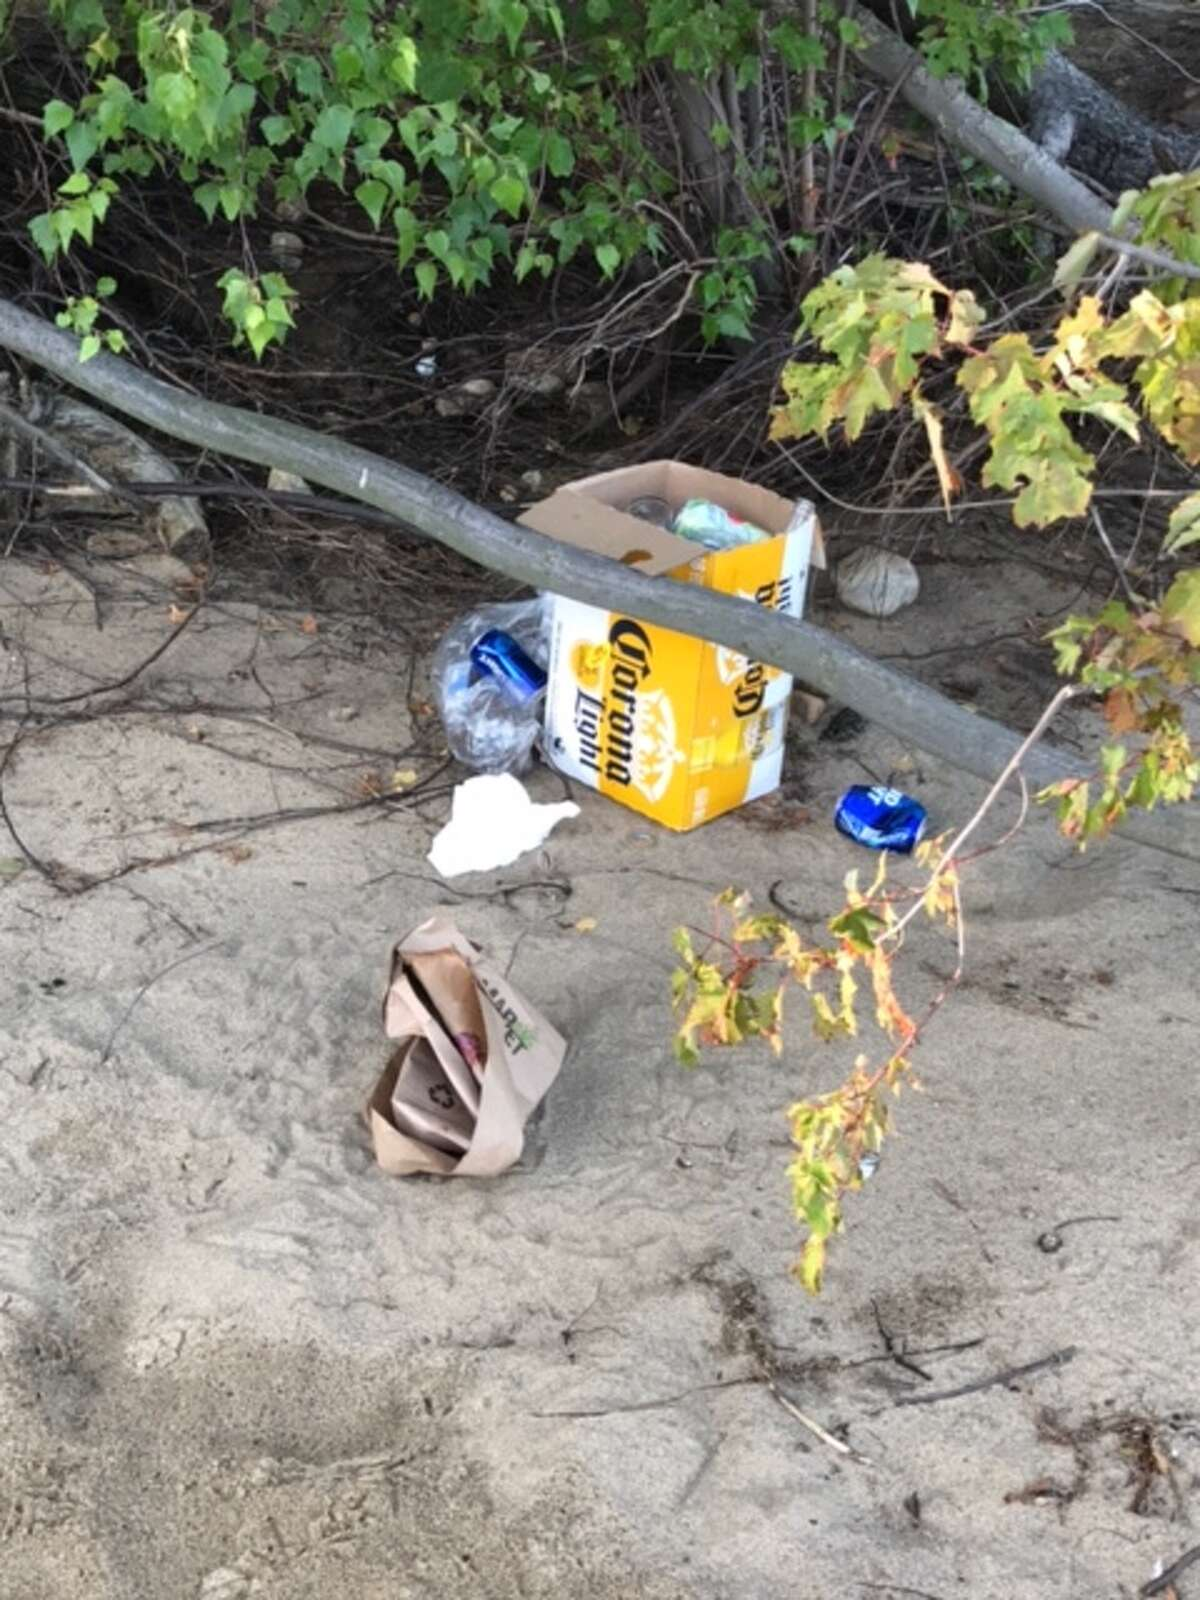 Visitors to Sand Island in the Great Sacandaga Lake left their garbage there in the summer of 2017. (Fulton County Sheriff's Department photo)